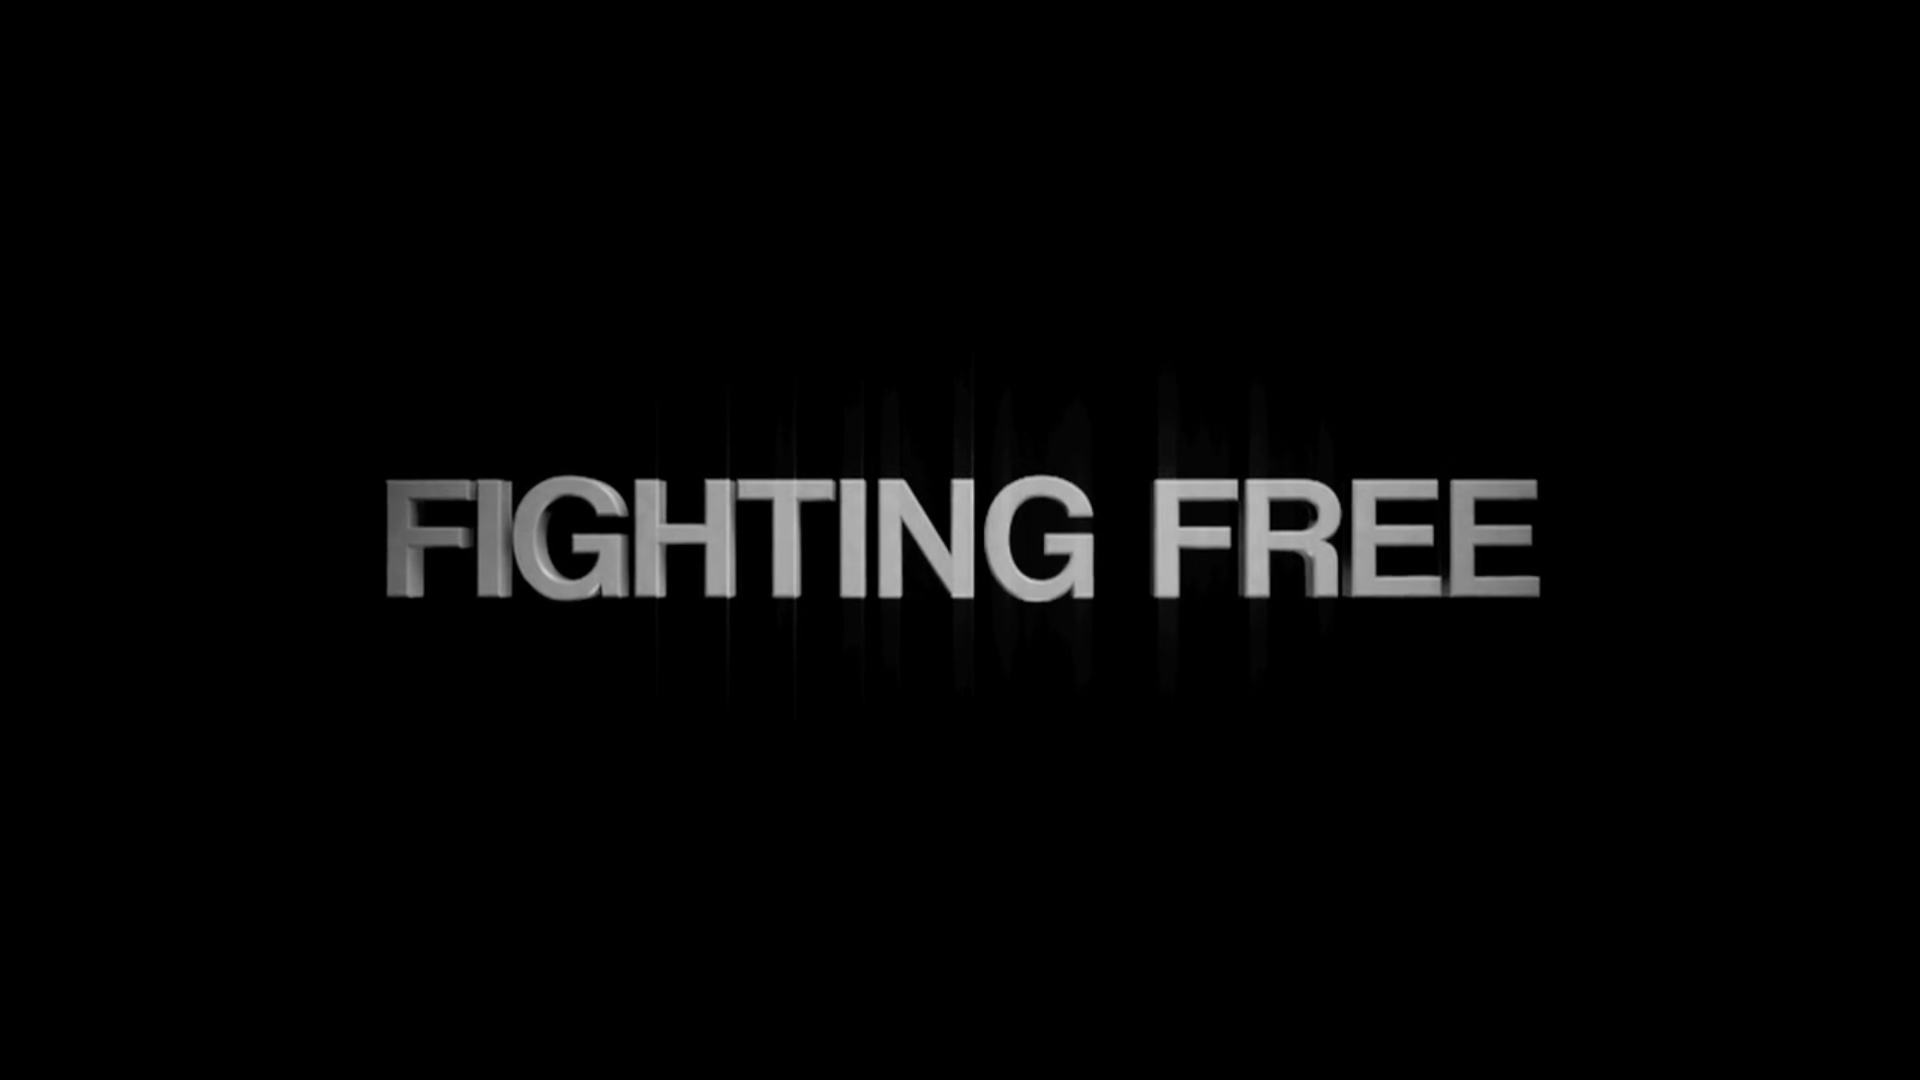 Fighting Free